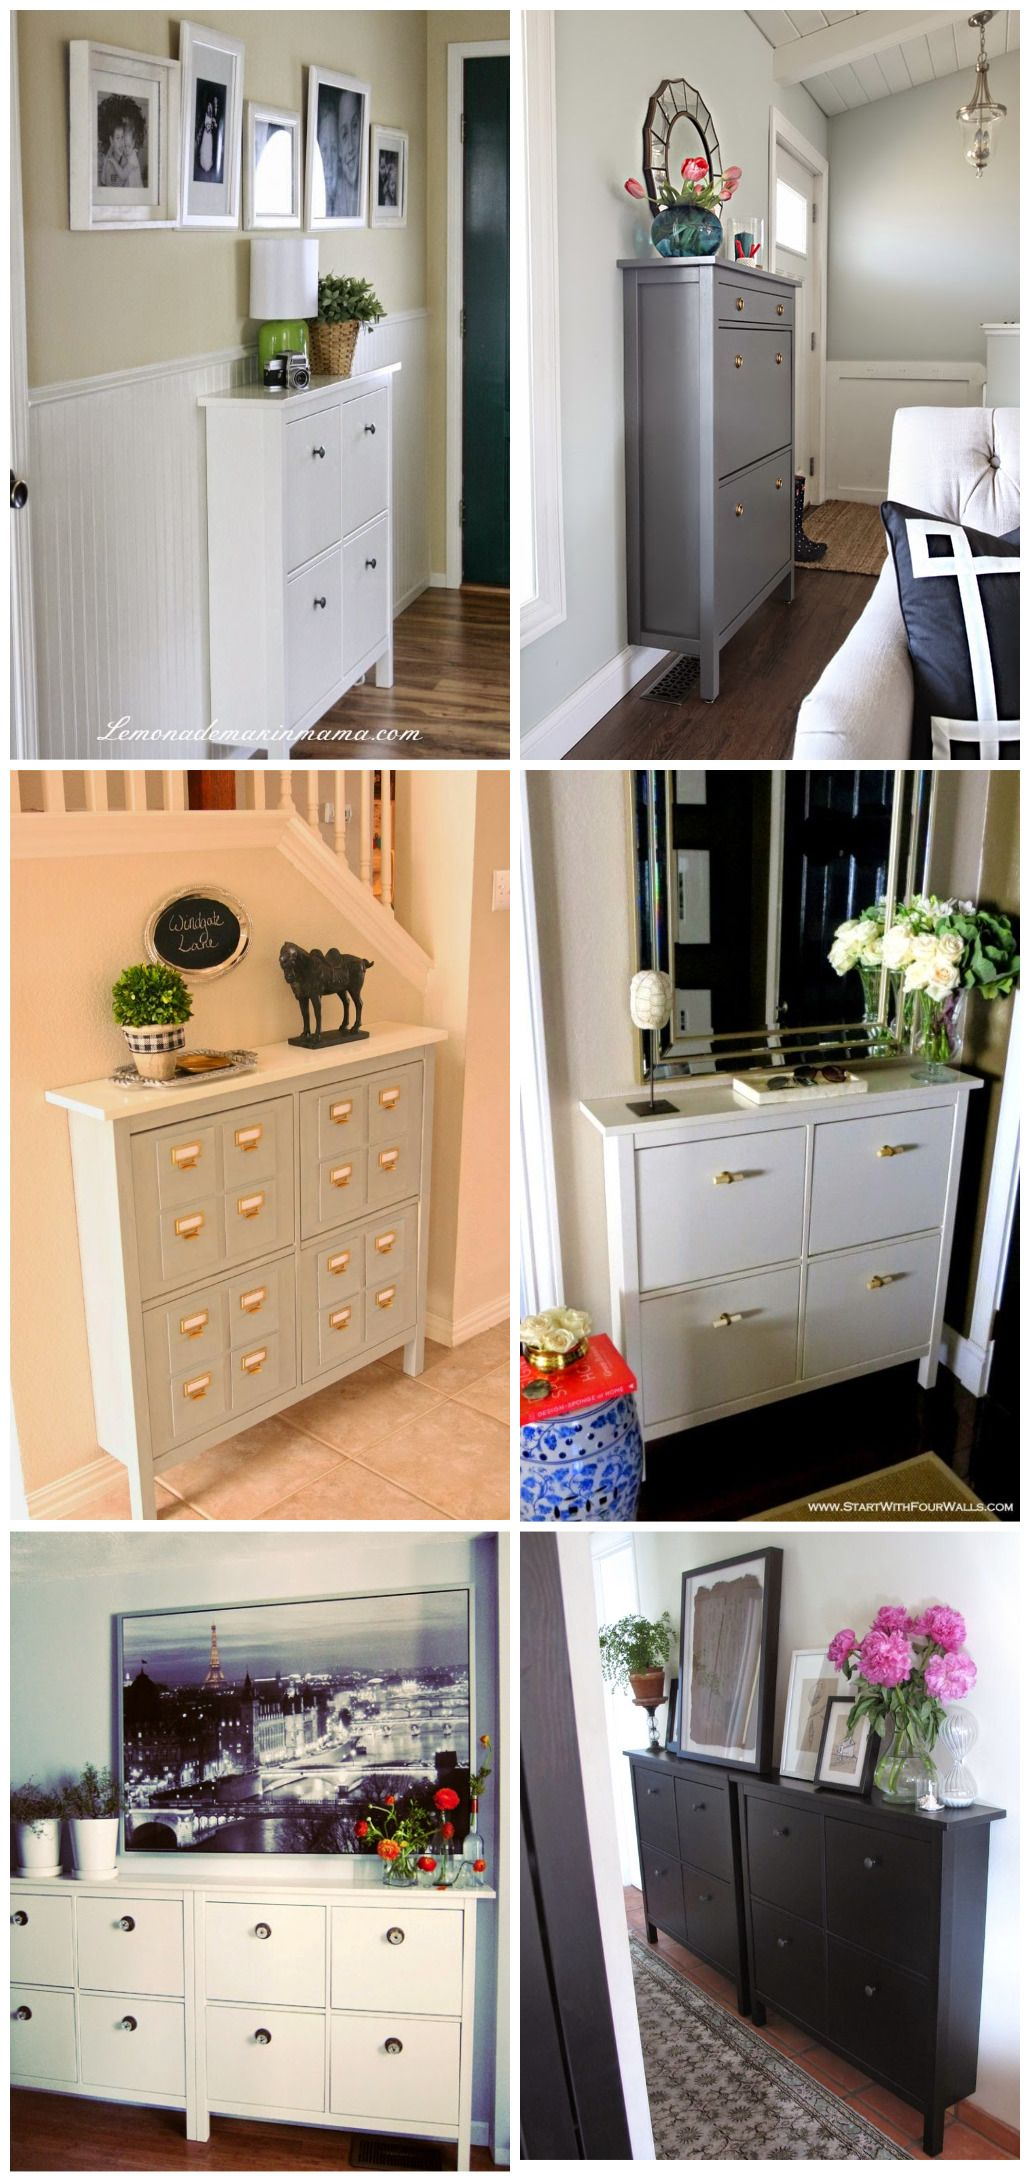 Ikea hemnes shoe cabinet only has front legs to allow for the closest fit to the wall the Ikea narrow kitchen cabinet